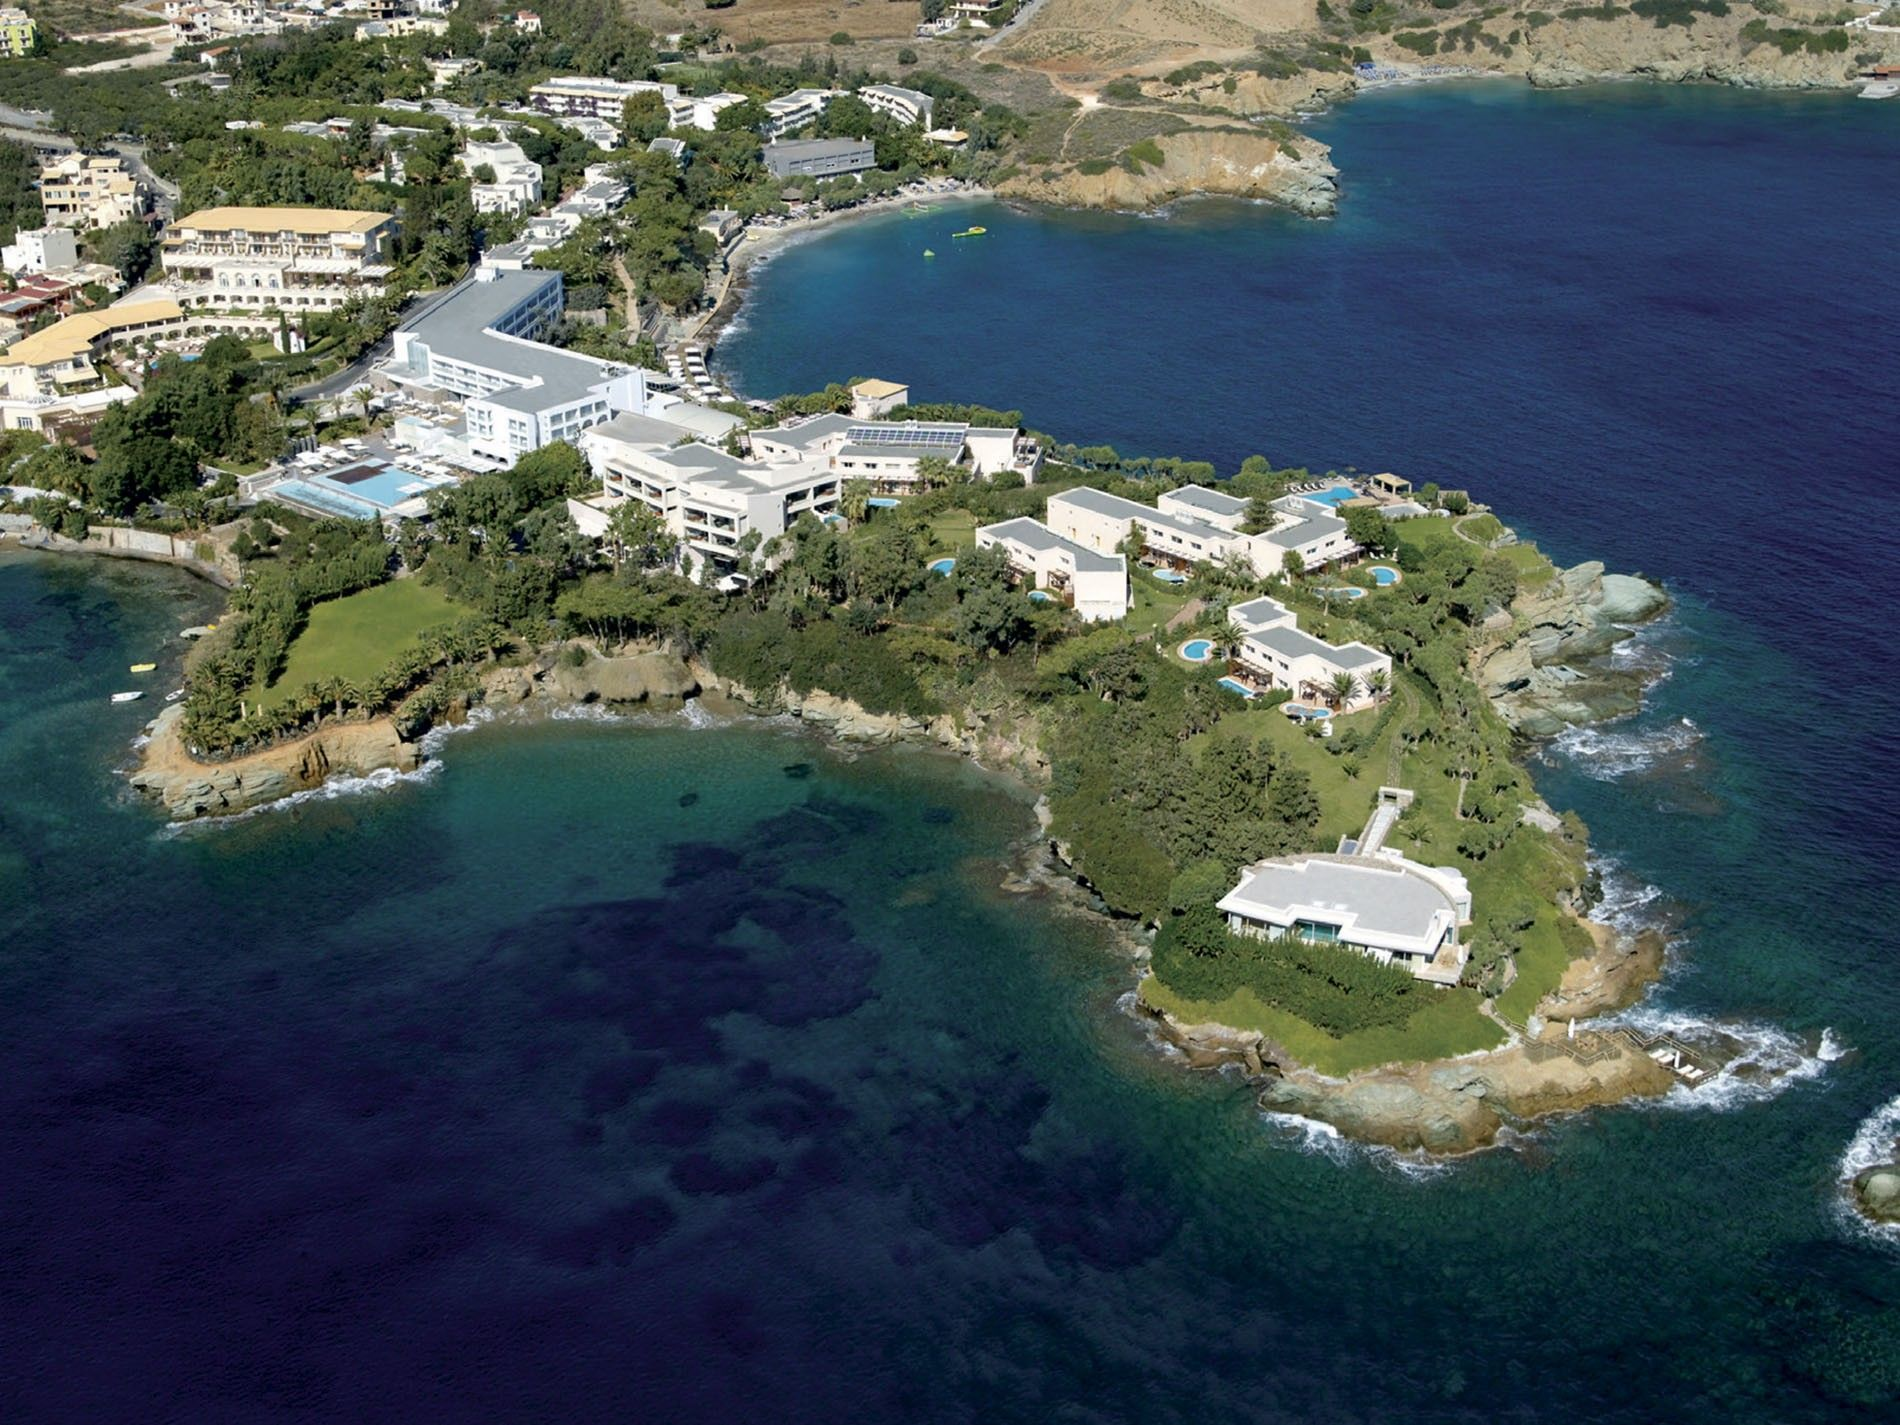 Aerial view of Out Of The Blue, Capsis Elite Resort